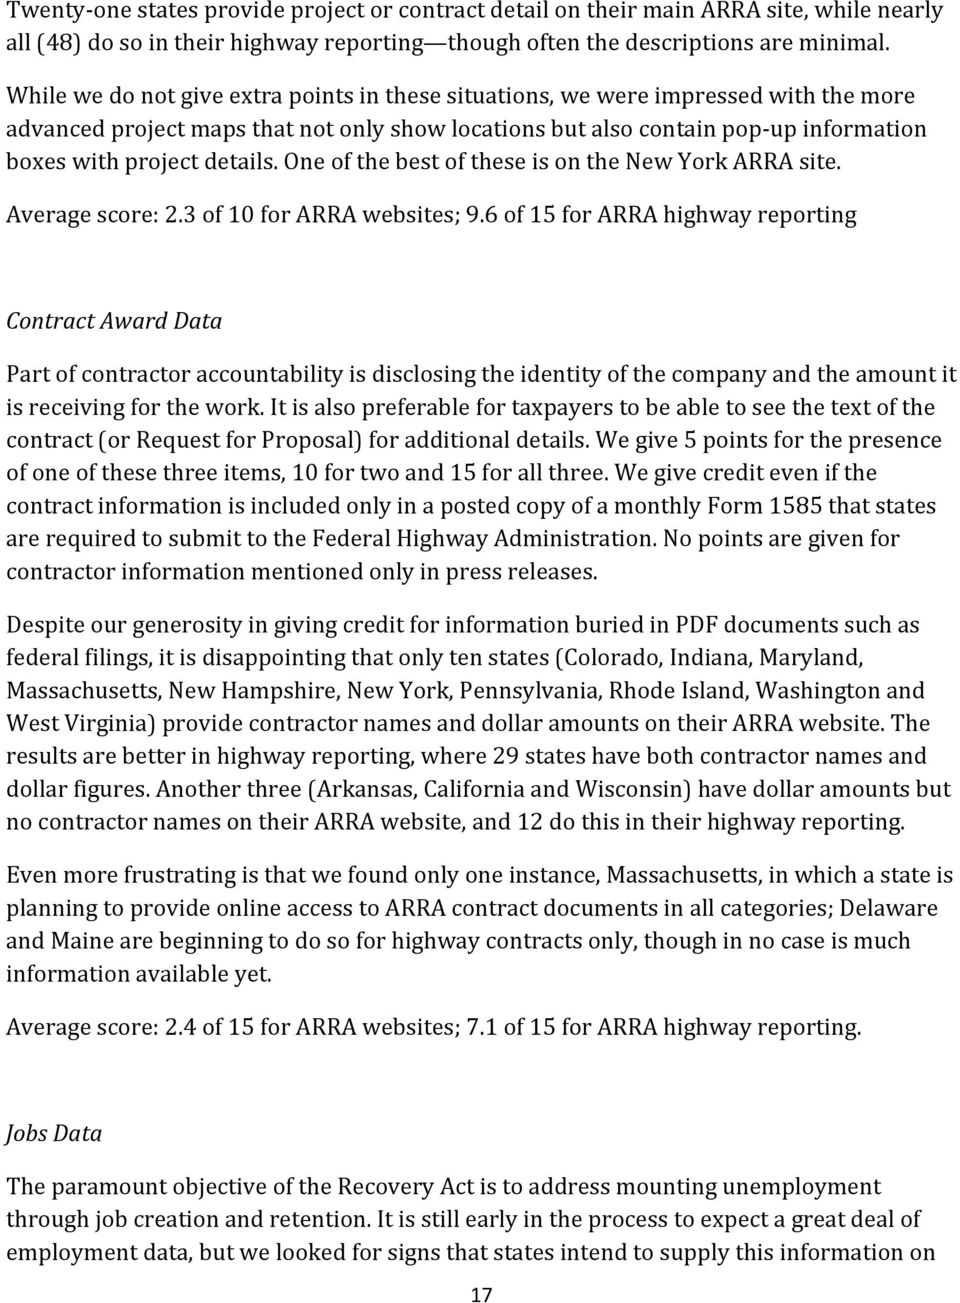 details. One of the best of these is on the New York ARRA site. Average score: 2.3 of 10 for ARRA websites; 9.